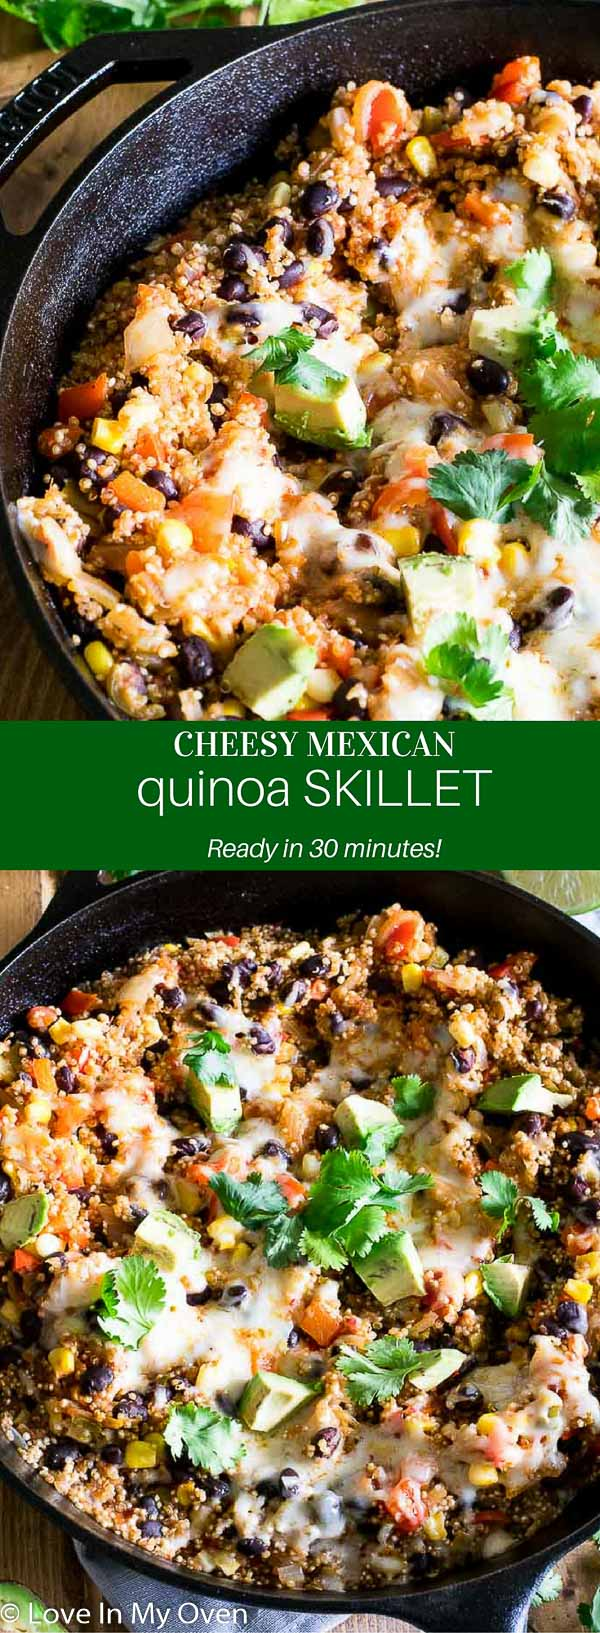 A hearty, healthy vegetarian Mexican dish that's prepared all in one pan and ready in 30 minutes!